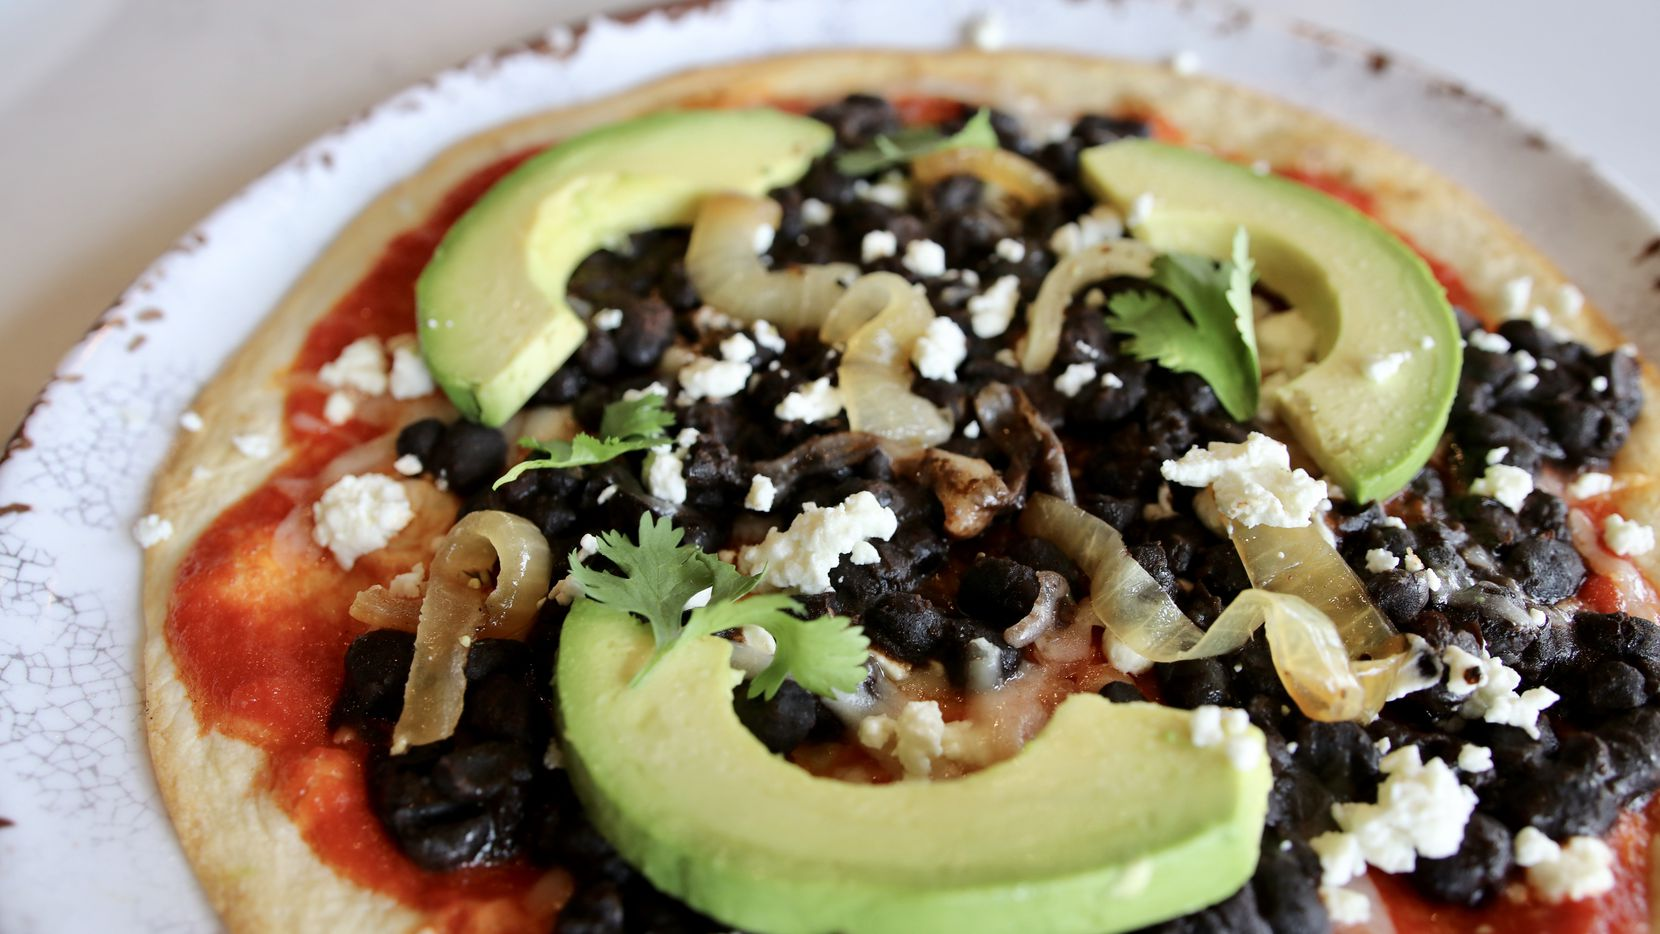 One of the new items on Fireside Pies' menu in fall 2020 is Oaxacan clayuda with black beans, queso fresco and avocado. Dallas chef Stephan Pyles created it.